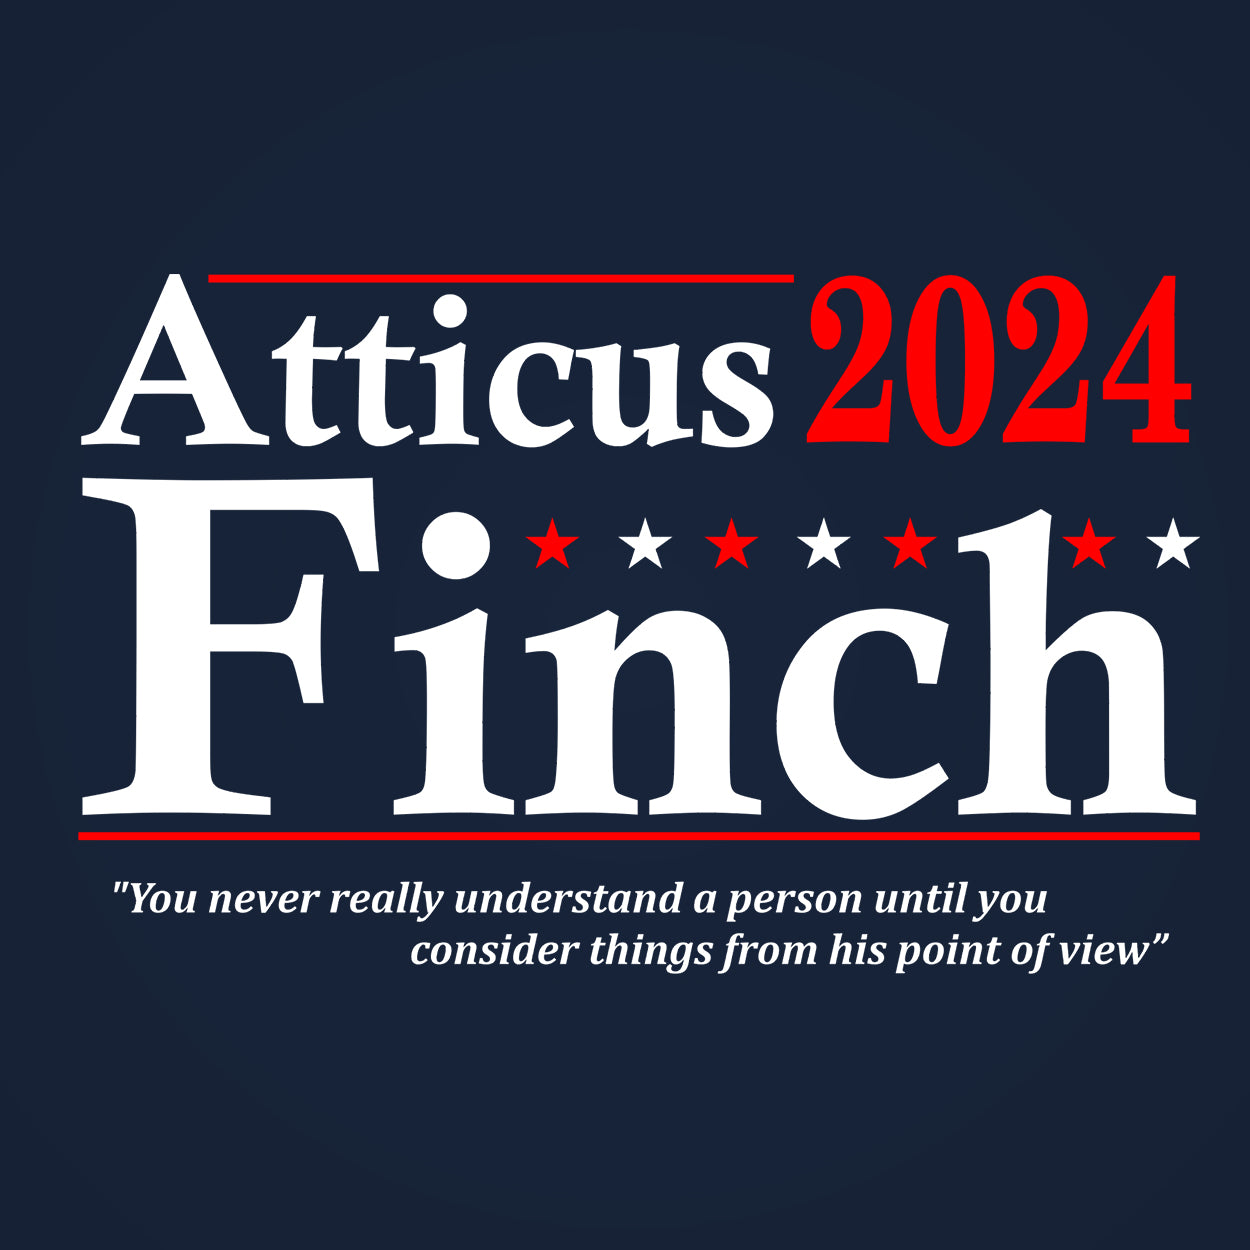 Atticus Finch 2024 Election